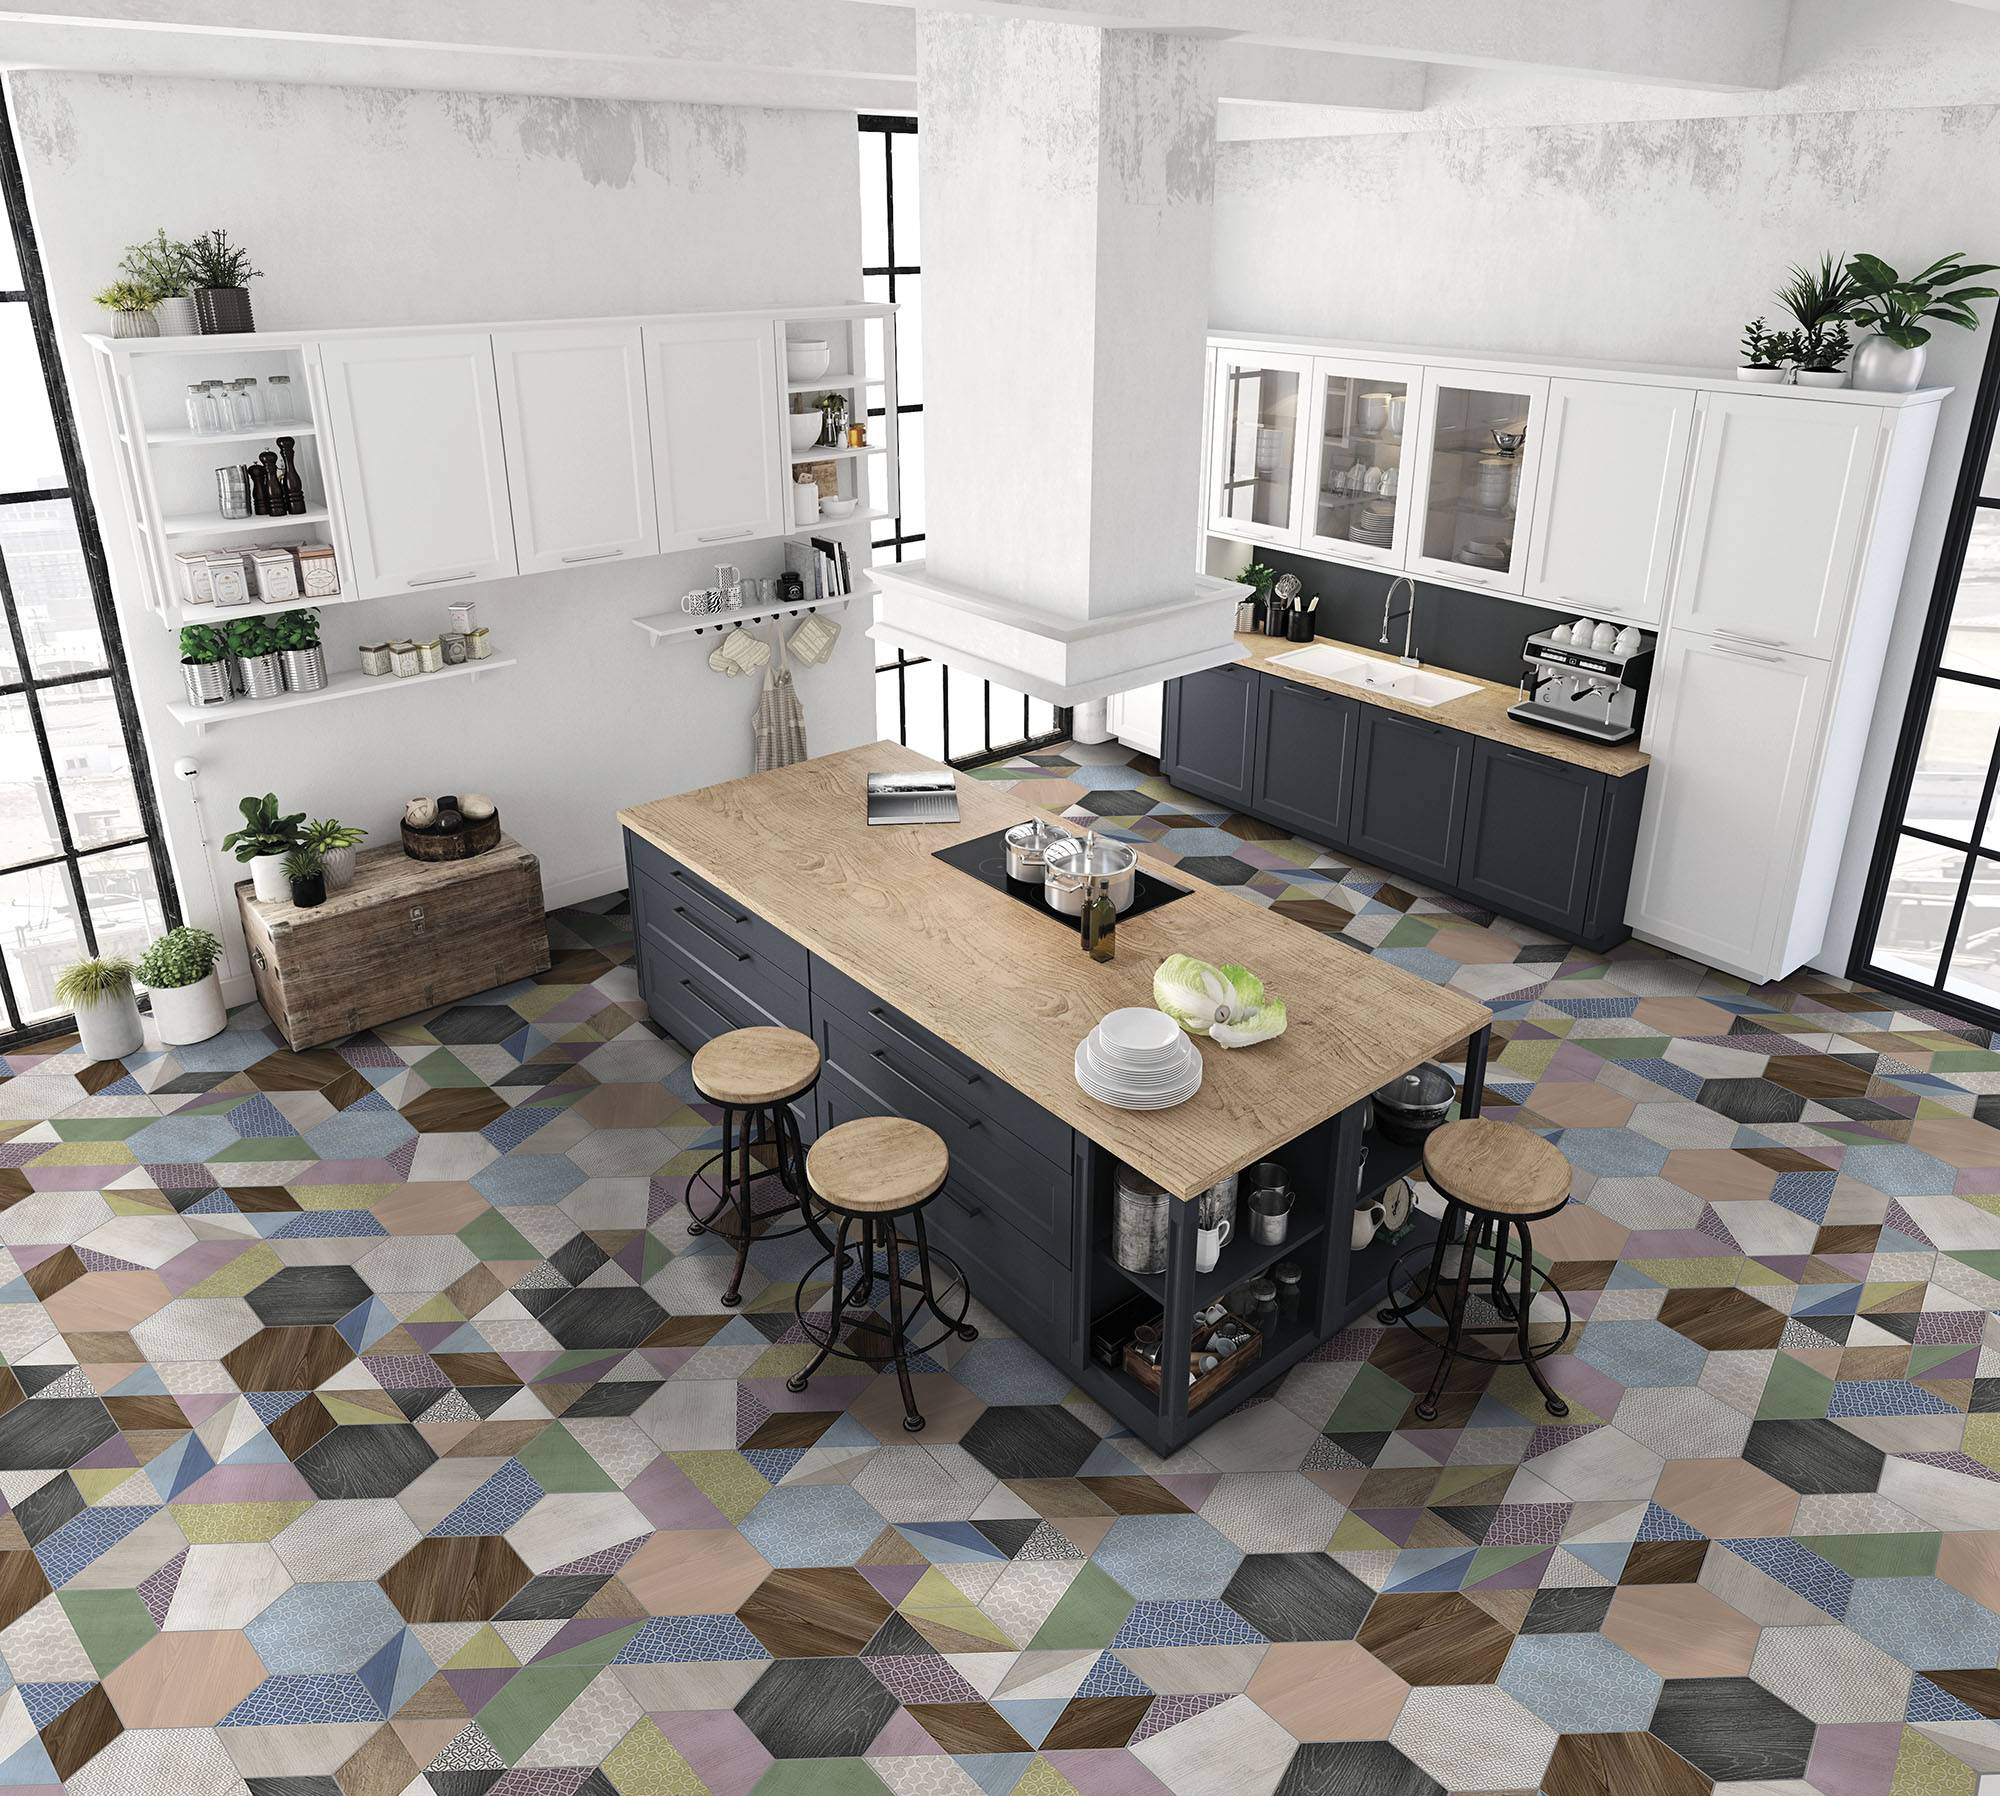 Plan de pose carrelage hexagonal